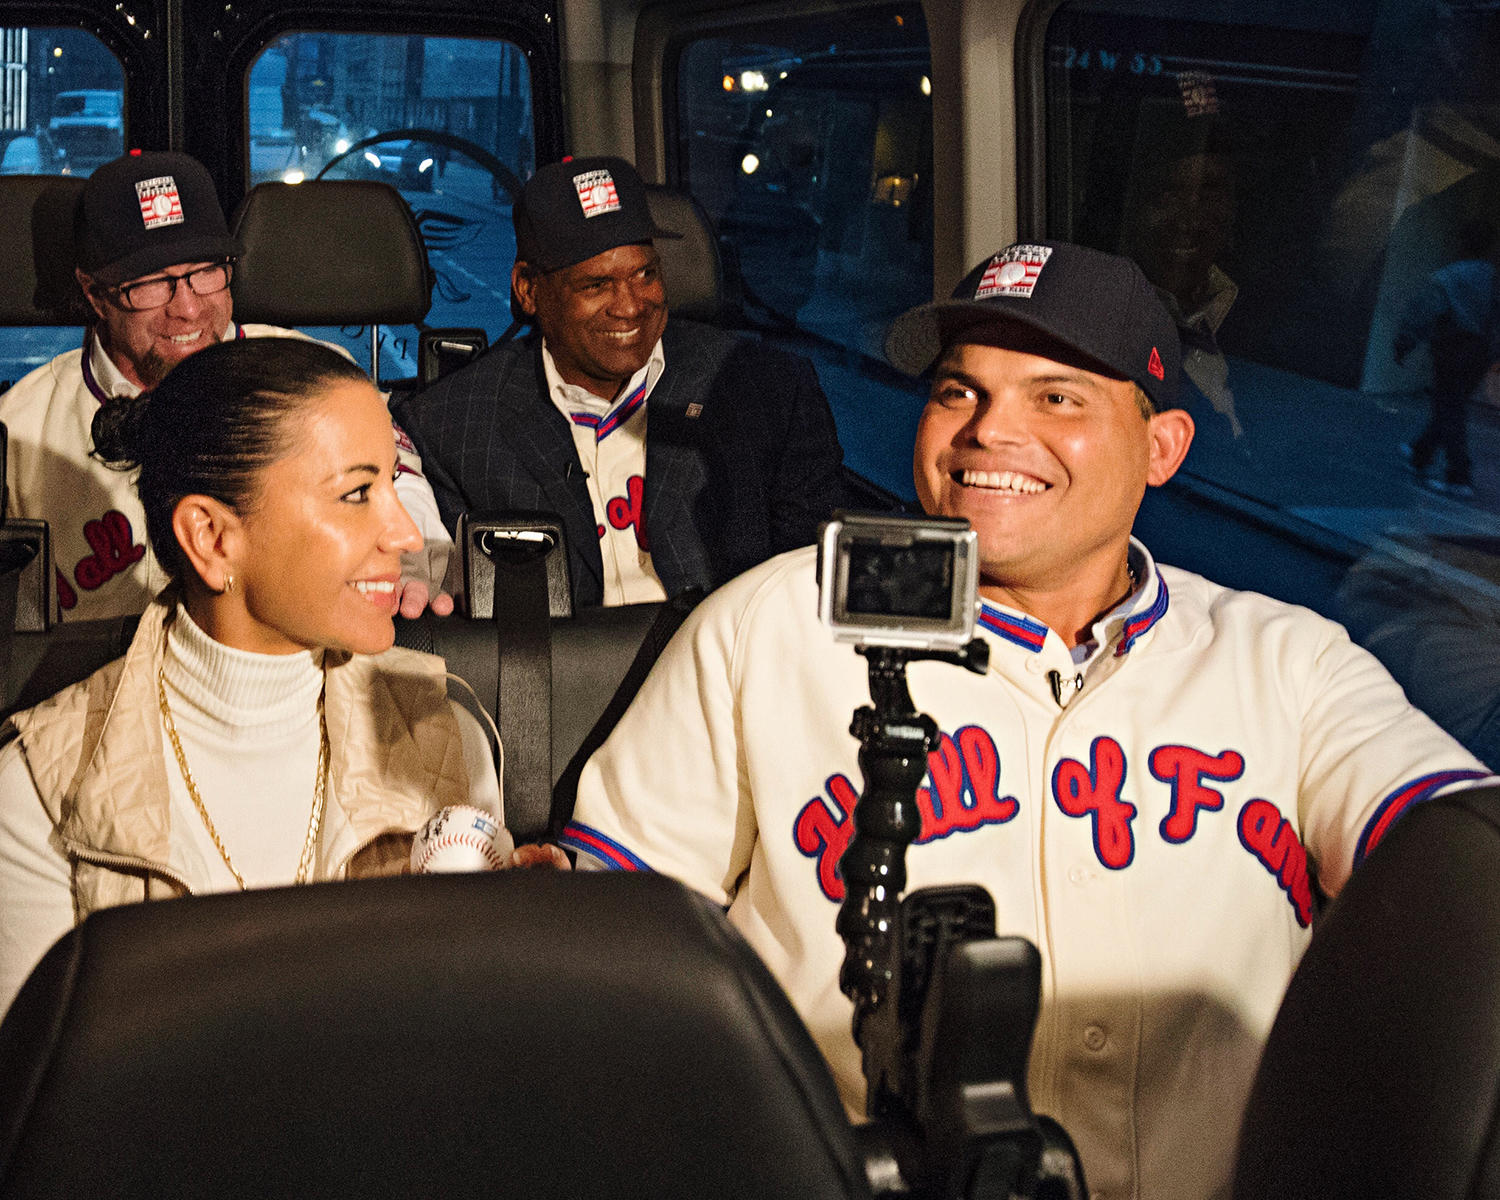 The new inductees were all smiles Jan. 19 during a jam-packed day of press conferences and interviews. (Jean Fruth / National Baseball Hall of Fame)